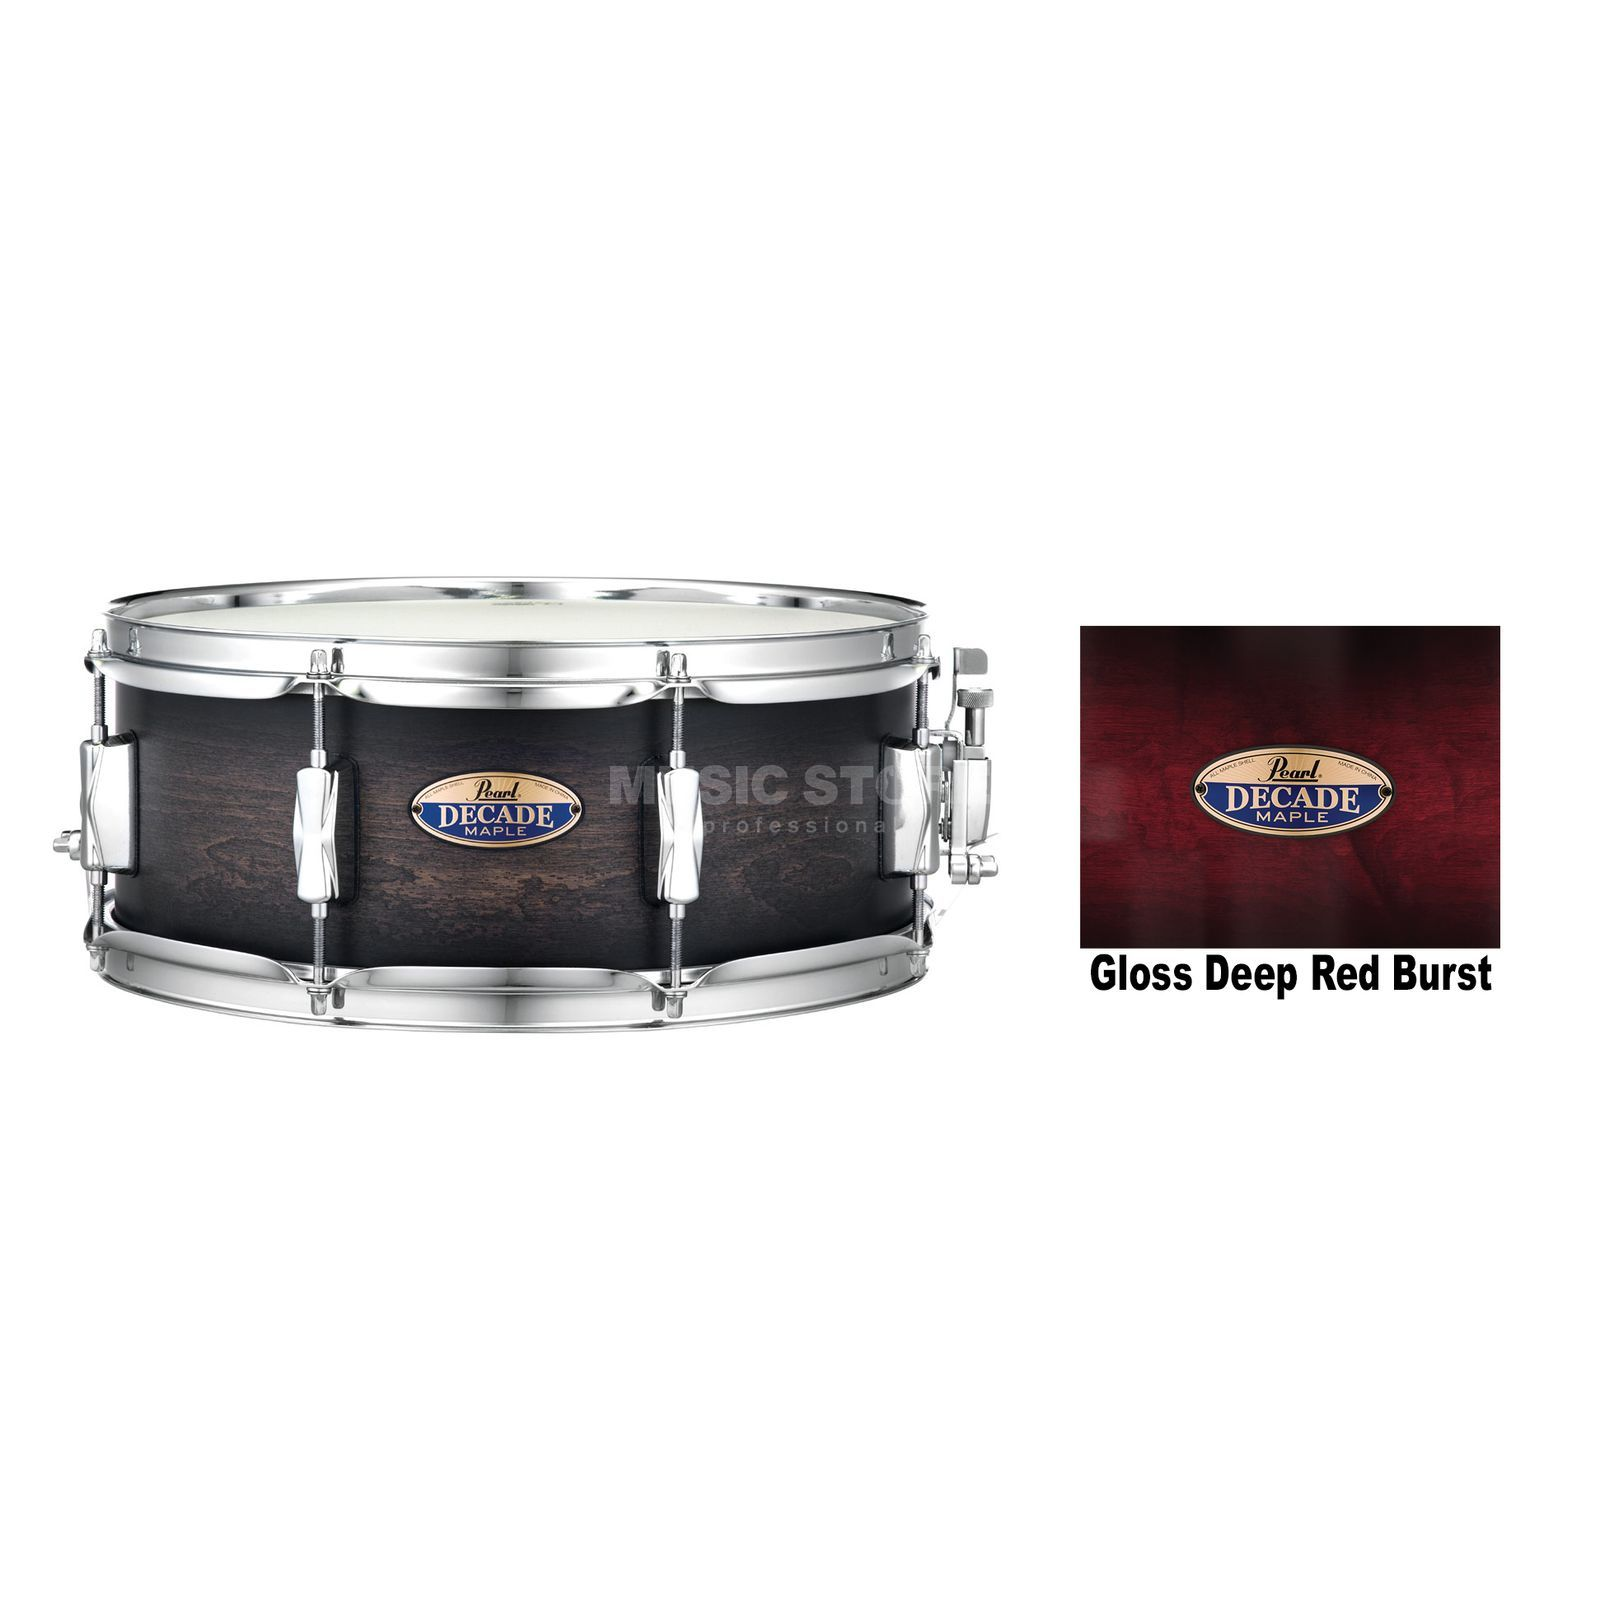 "Pearl Decade Maple Snare 14""x5,5"", Gloss Deep Red Burst #261 Image du produit"